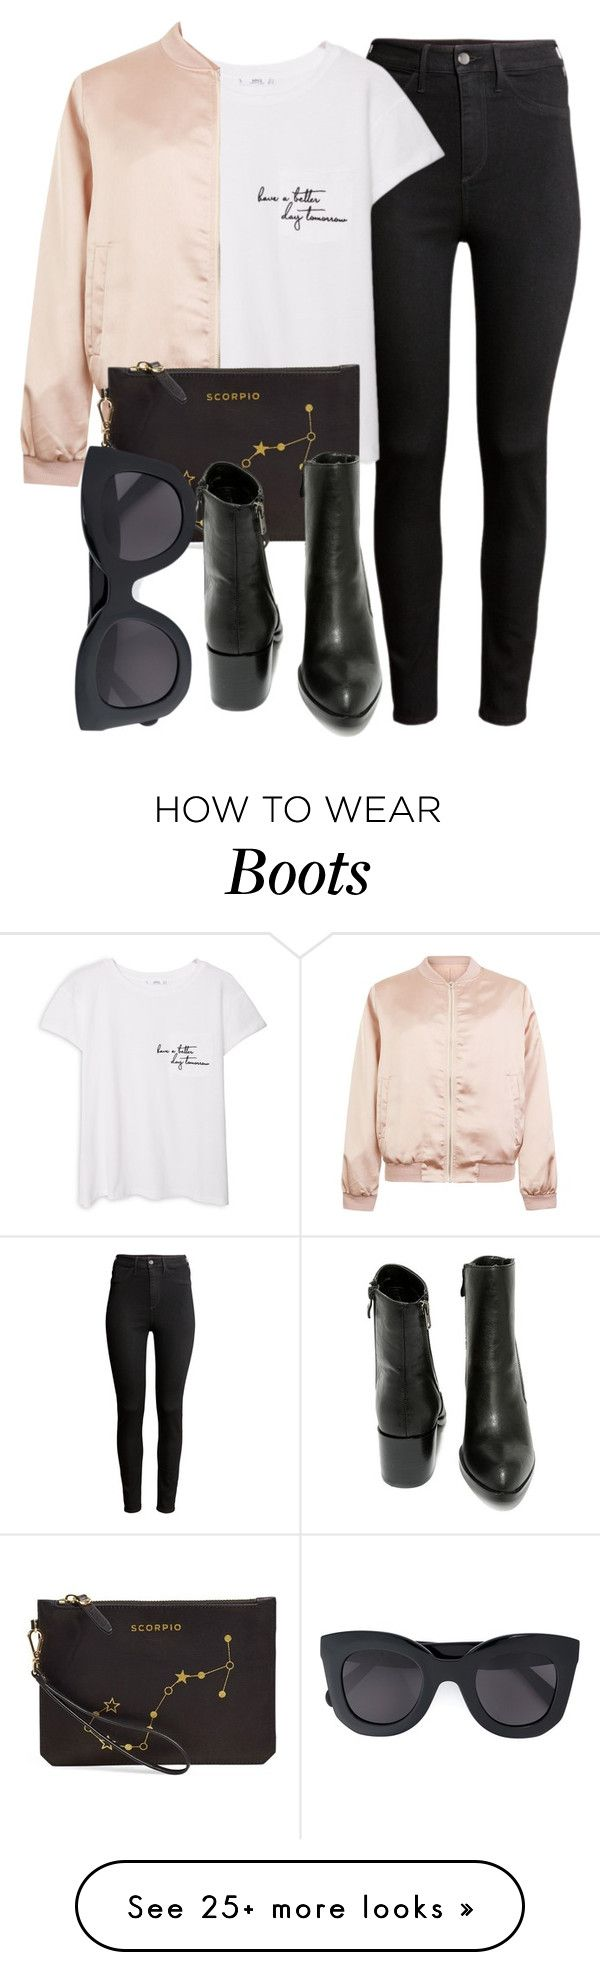 """""""Untitled #4928"""" by laurenmboot on Polyvore featuring Mode, H&M, MANGO, Cameo Rose, Etienne Aigner, Very Volatile und CÉLINE"""